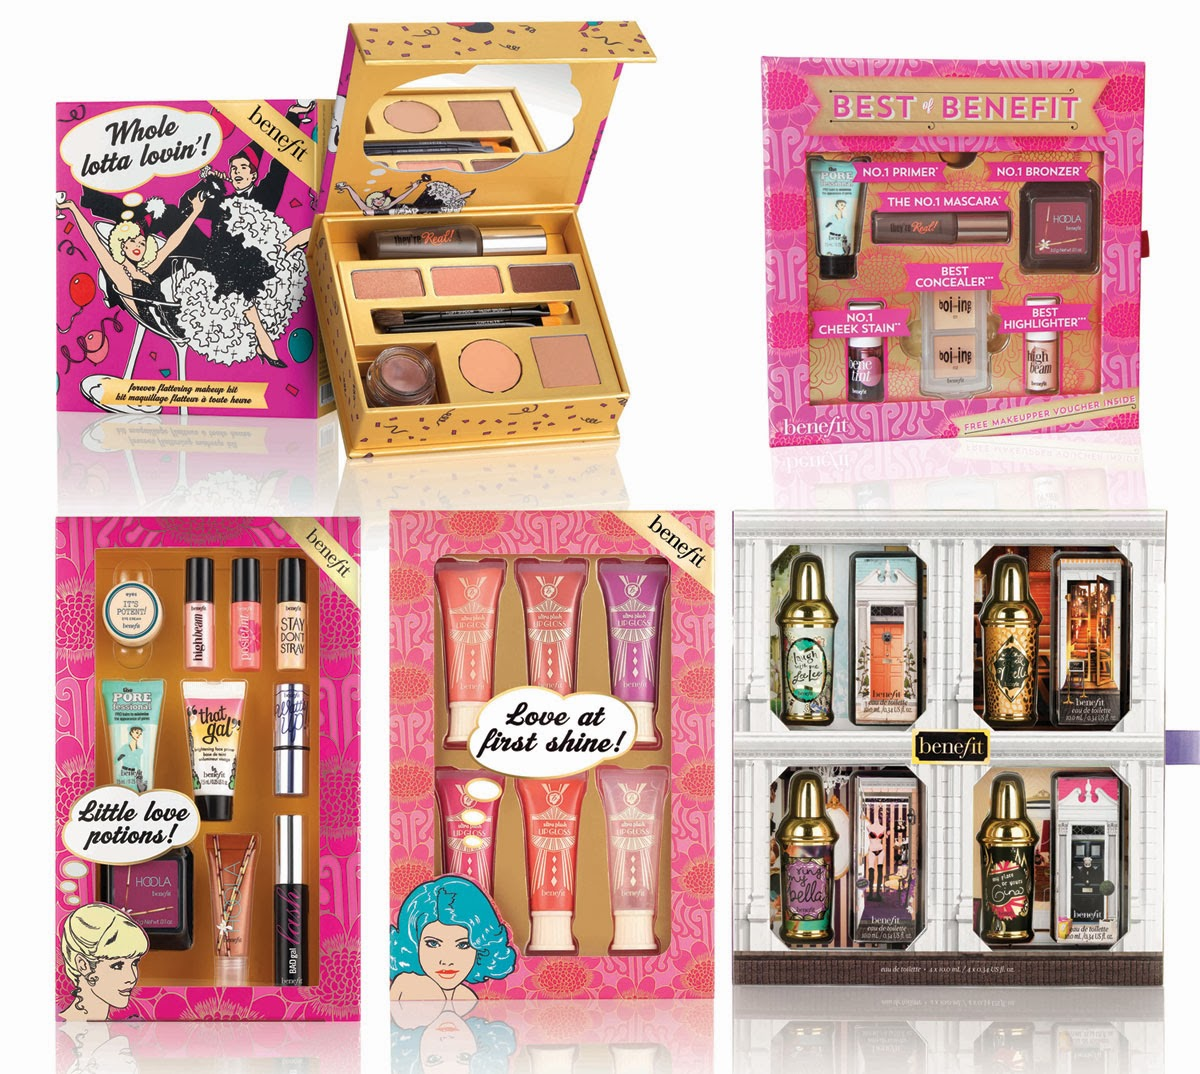 Christmas gift sets by benefit cosmetics sweet elyse